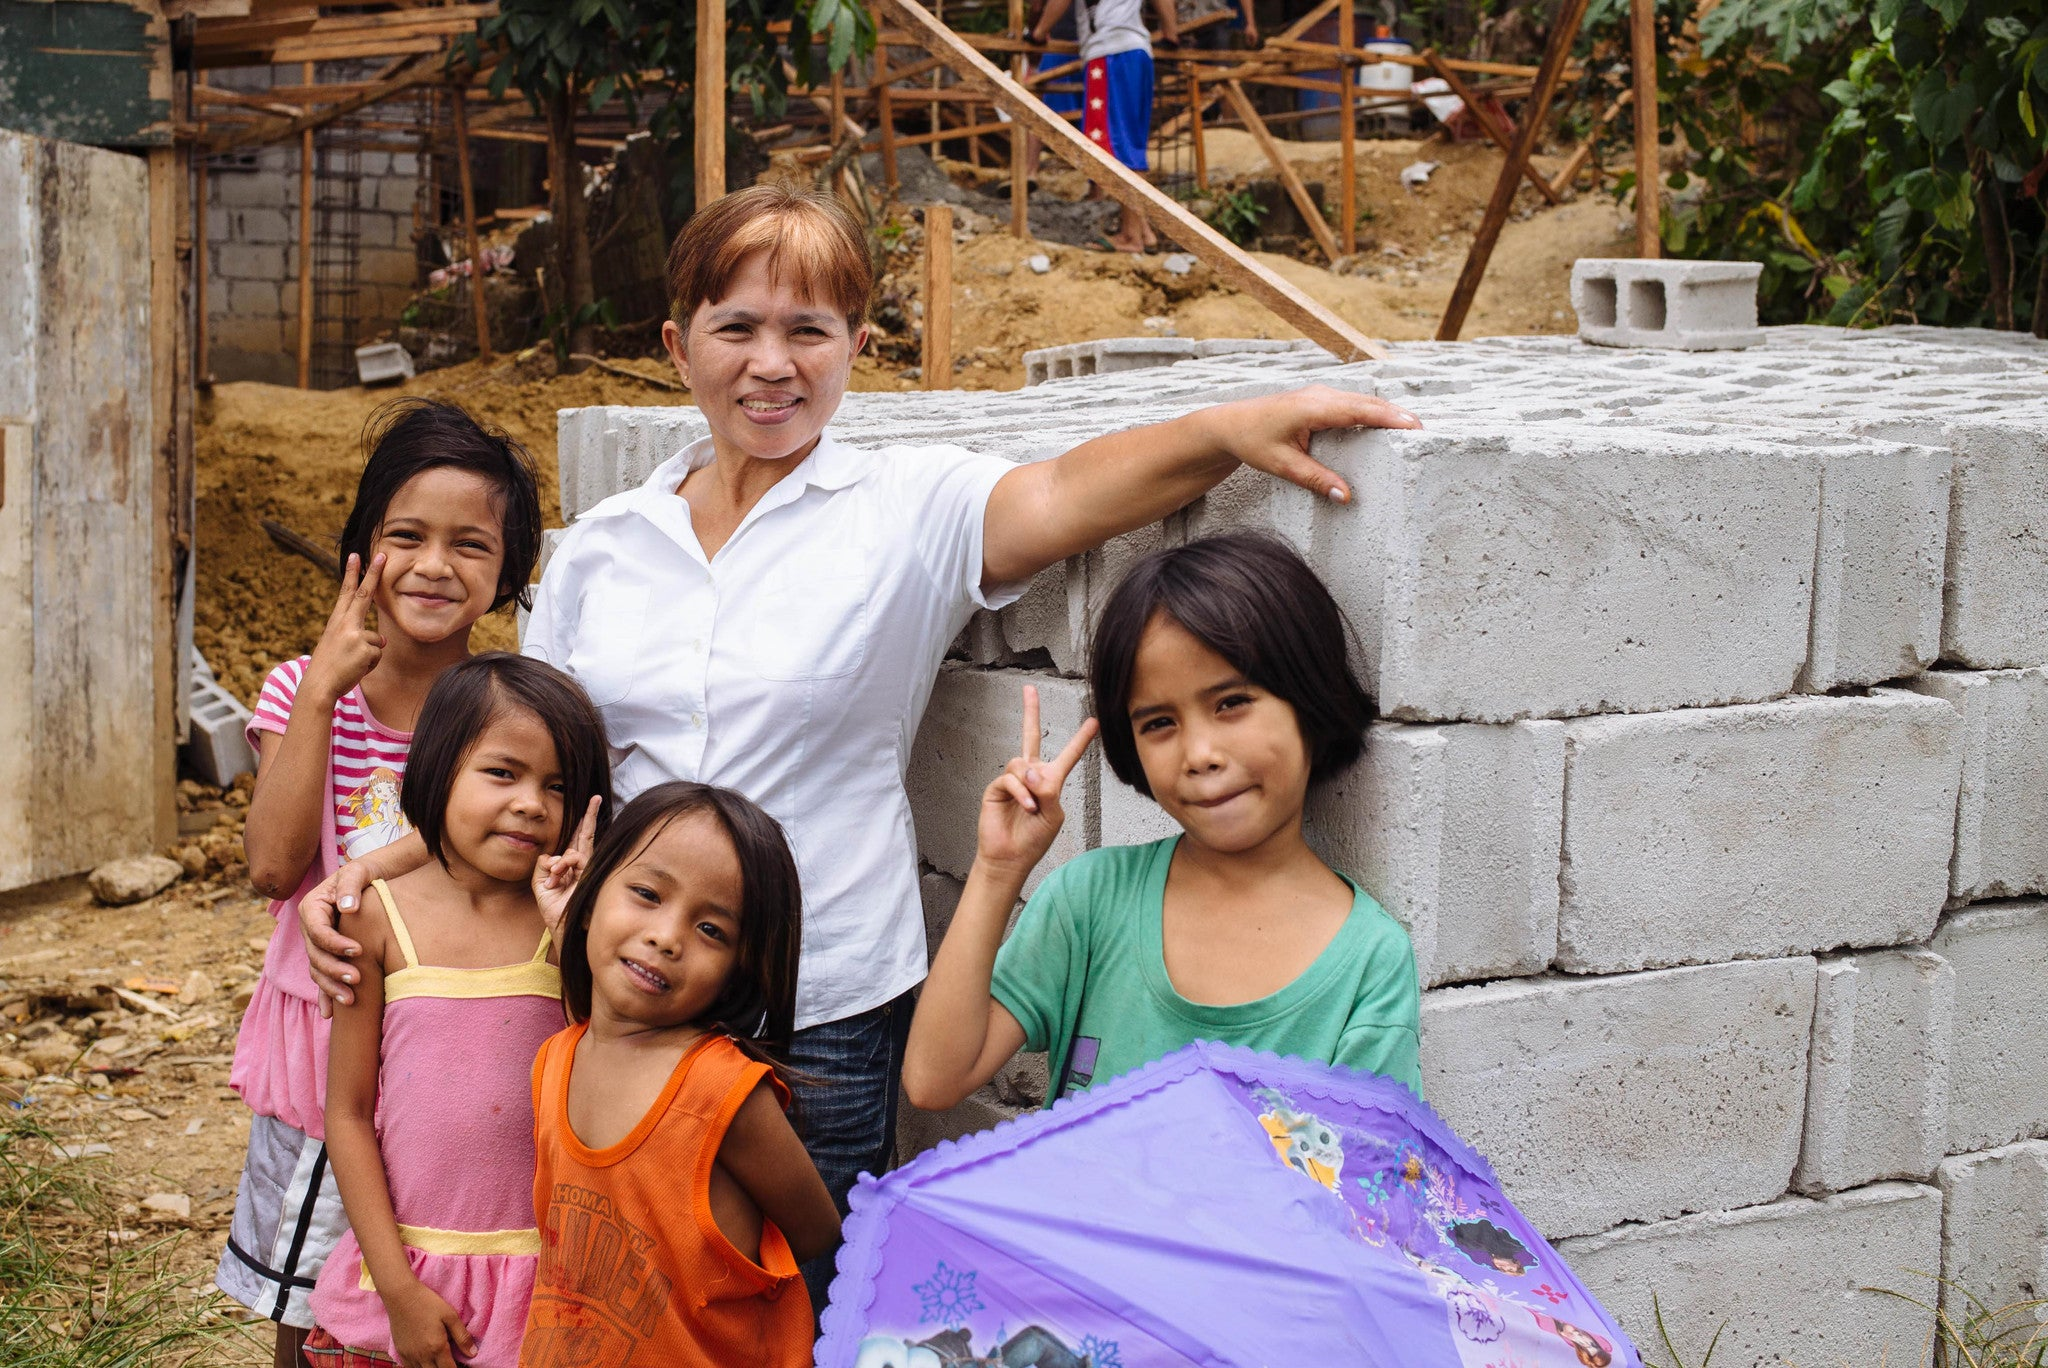 Philippine child prostitution  Manila: New facility at Children's Hope Center to strengthen outreach to  child labor victims